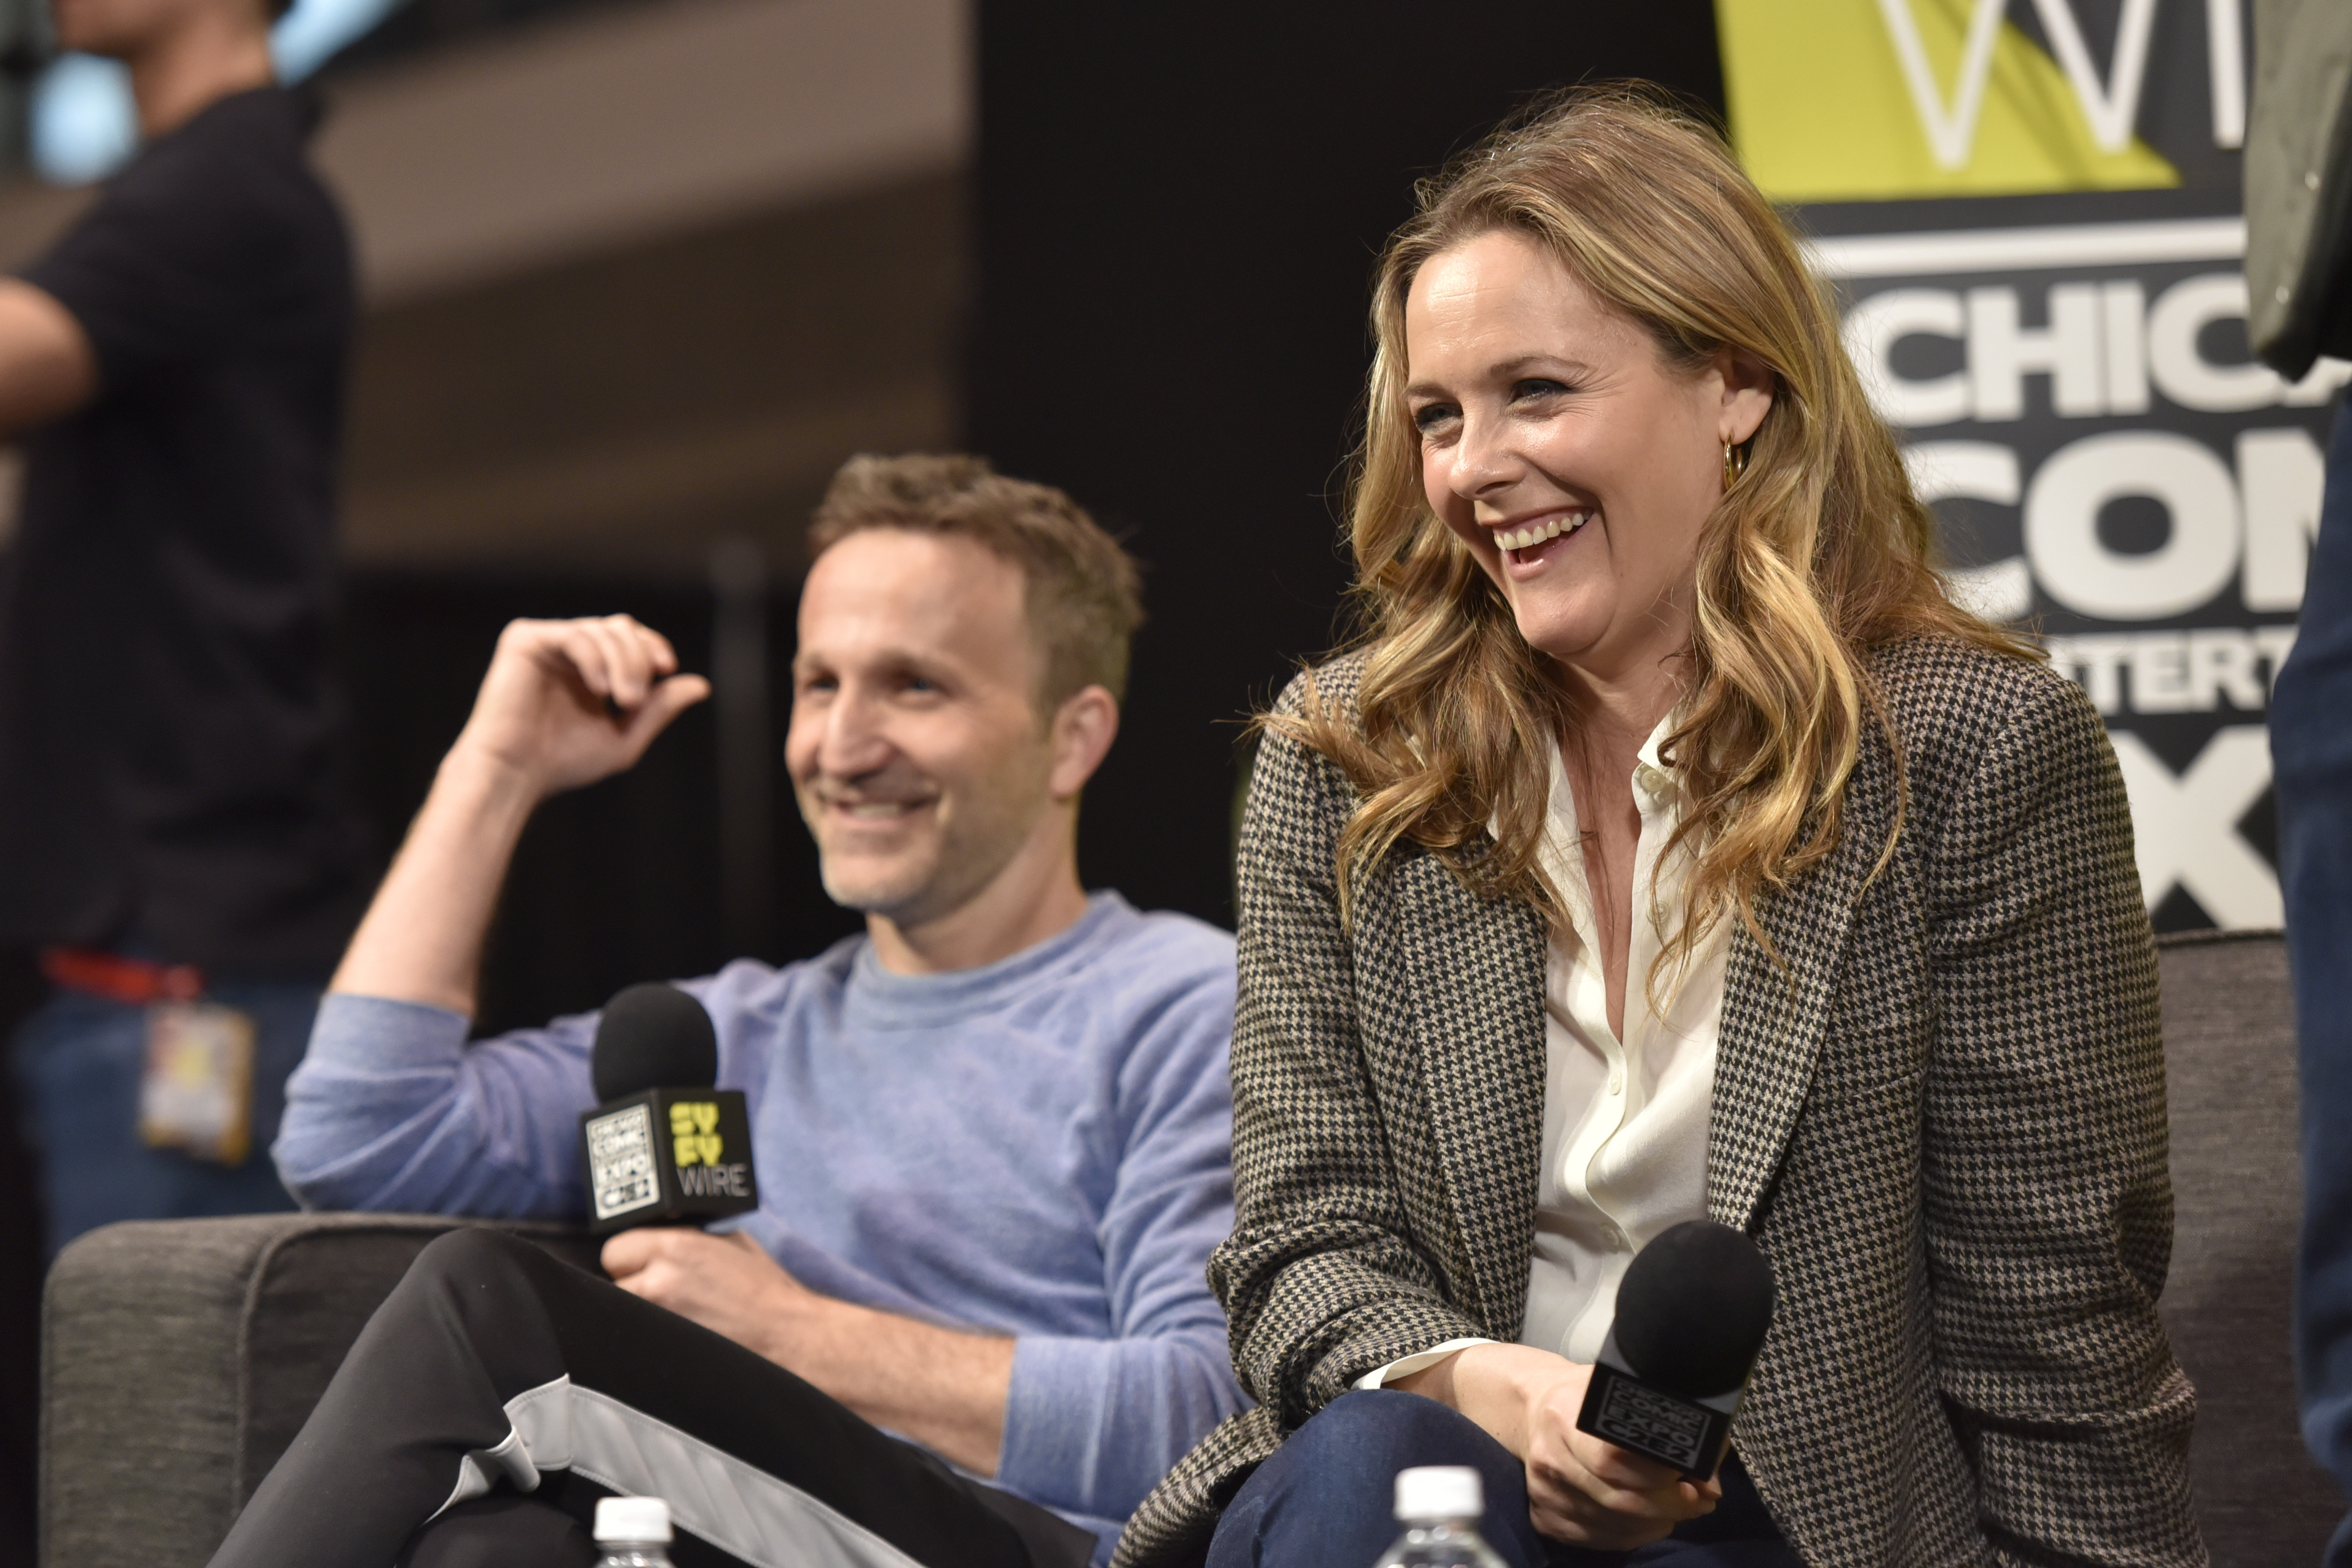 Alicia Silverstone, Breckin Meyer seen on day 3 during the Clueless Reunion Panel at C2E2 at McCormick Place on Sunday, March 24, 2019 in Chicago.